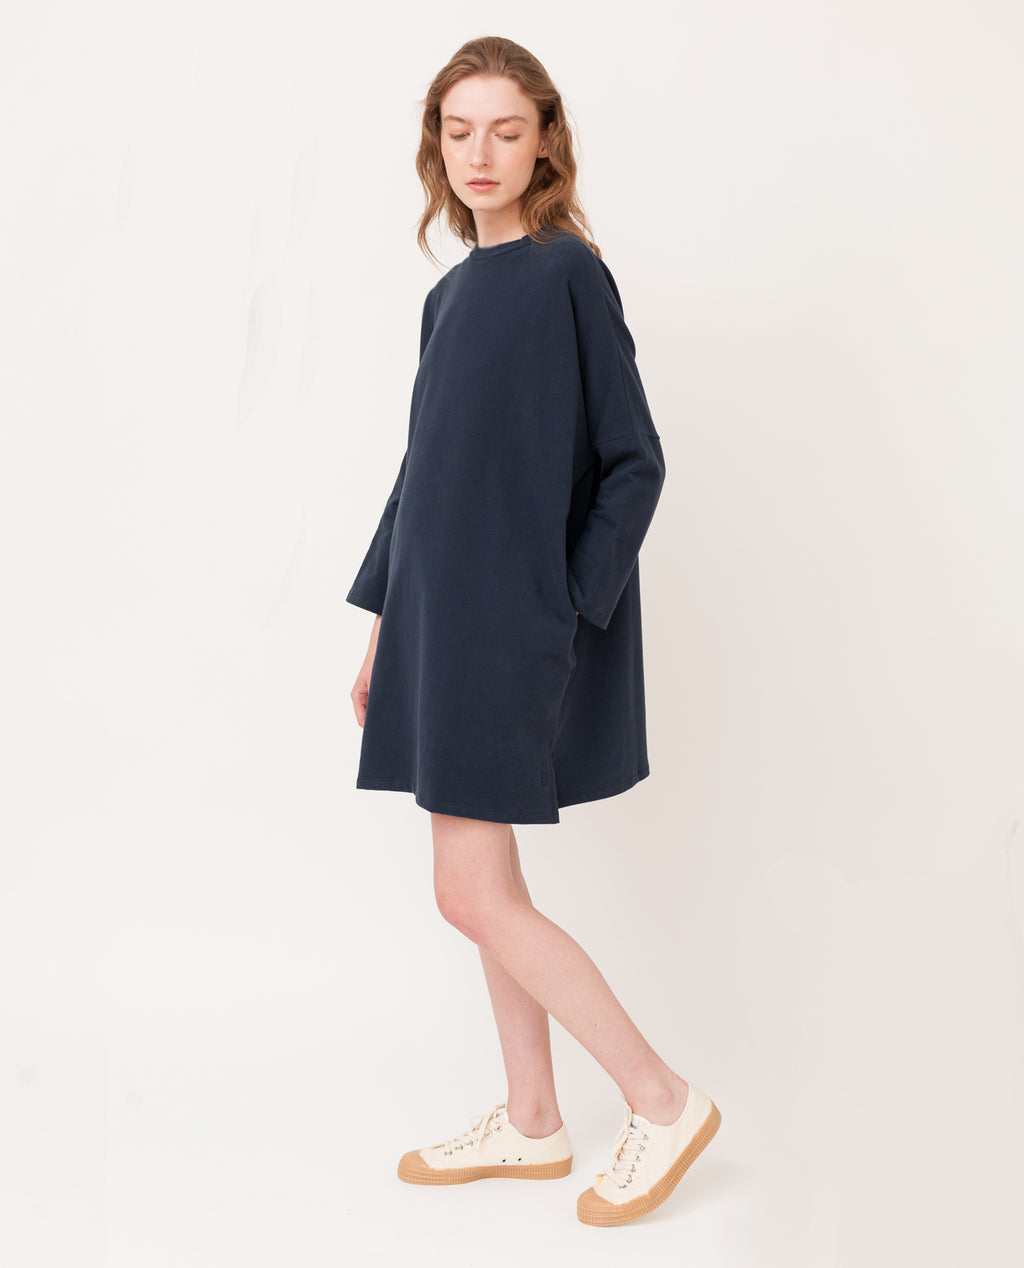 SARASI Organic Cotton Dress In Navy